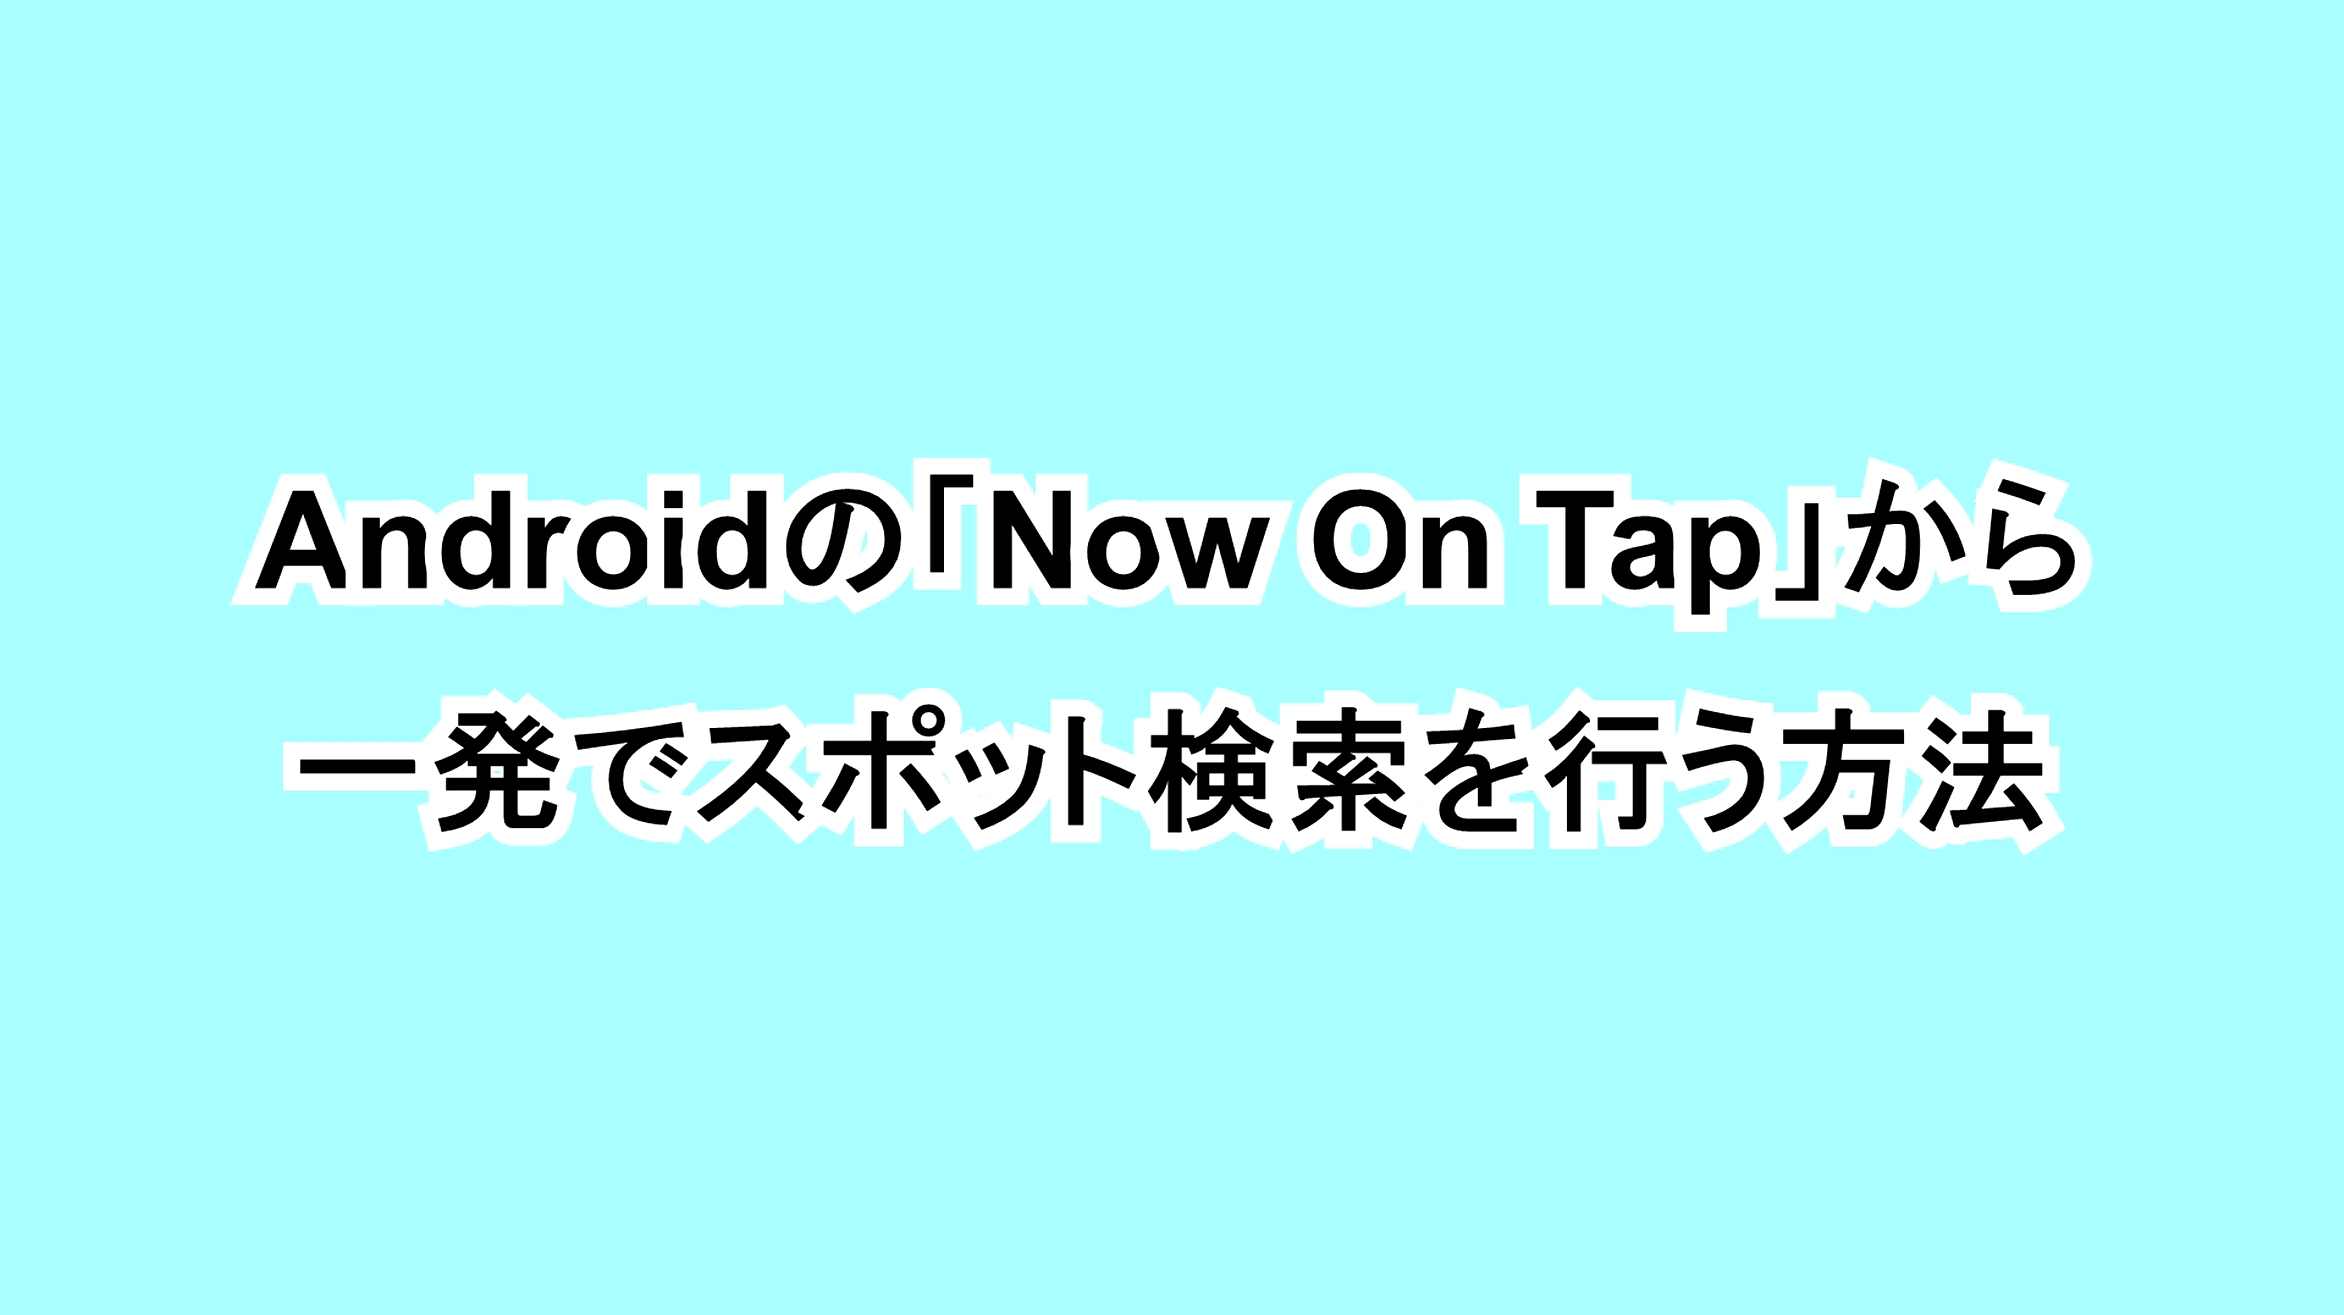 Androidの「Now On Tap」から一発でスポット表示を行う方法